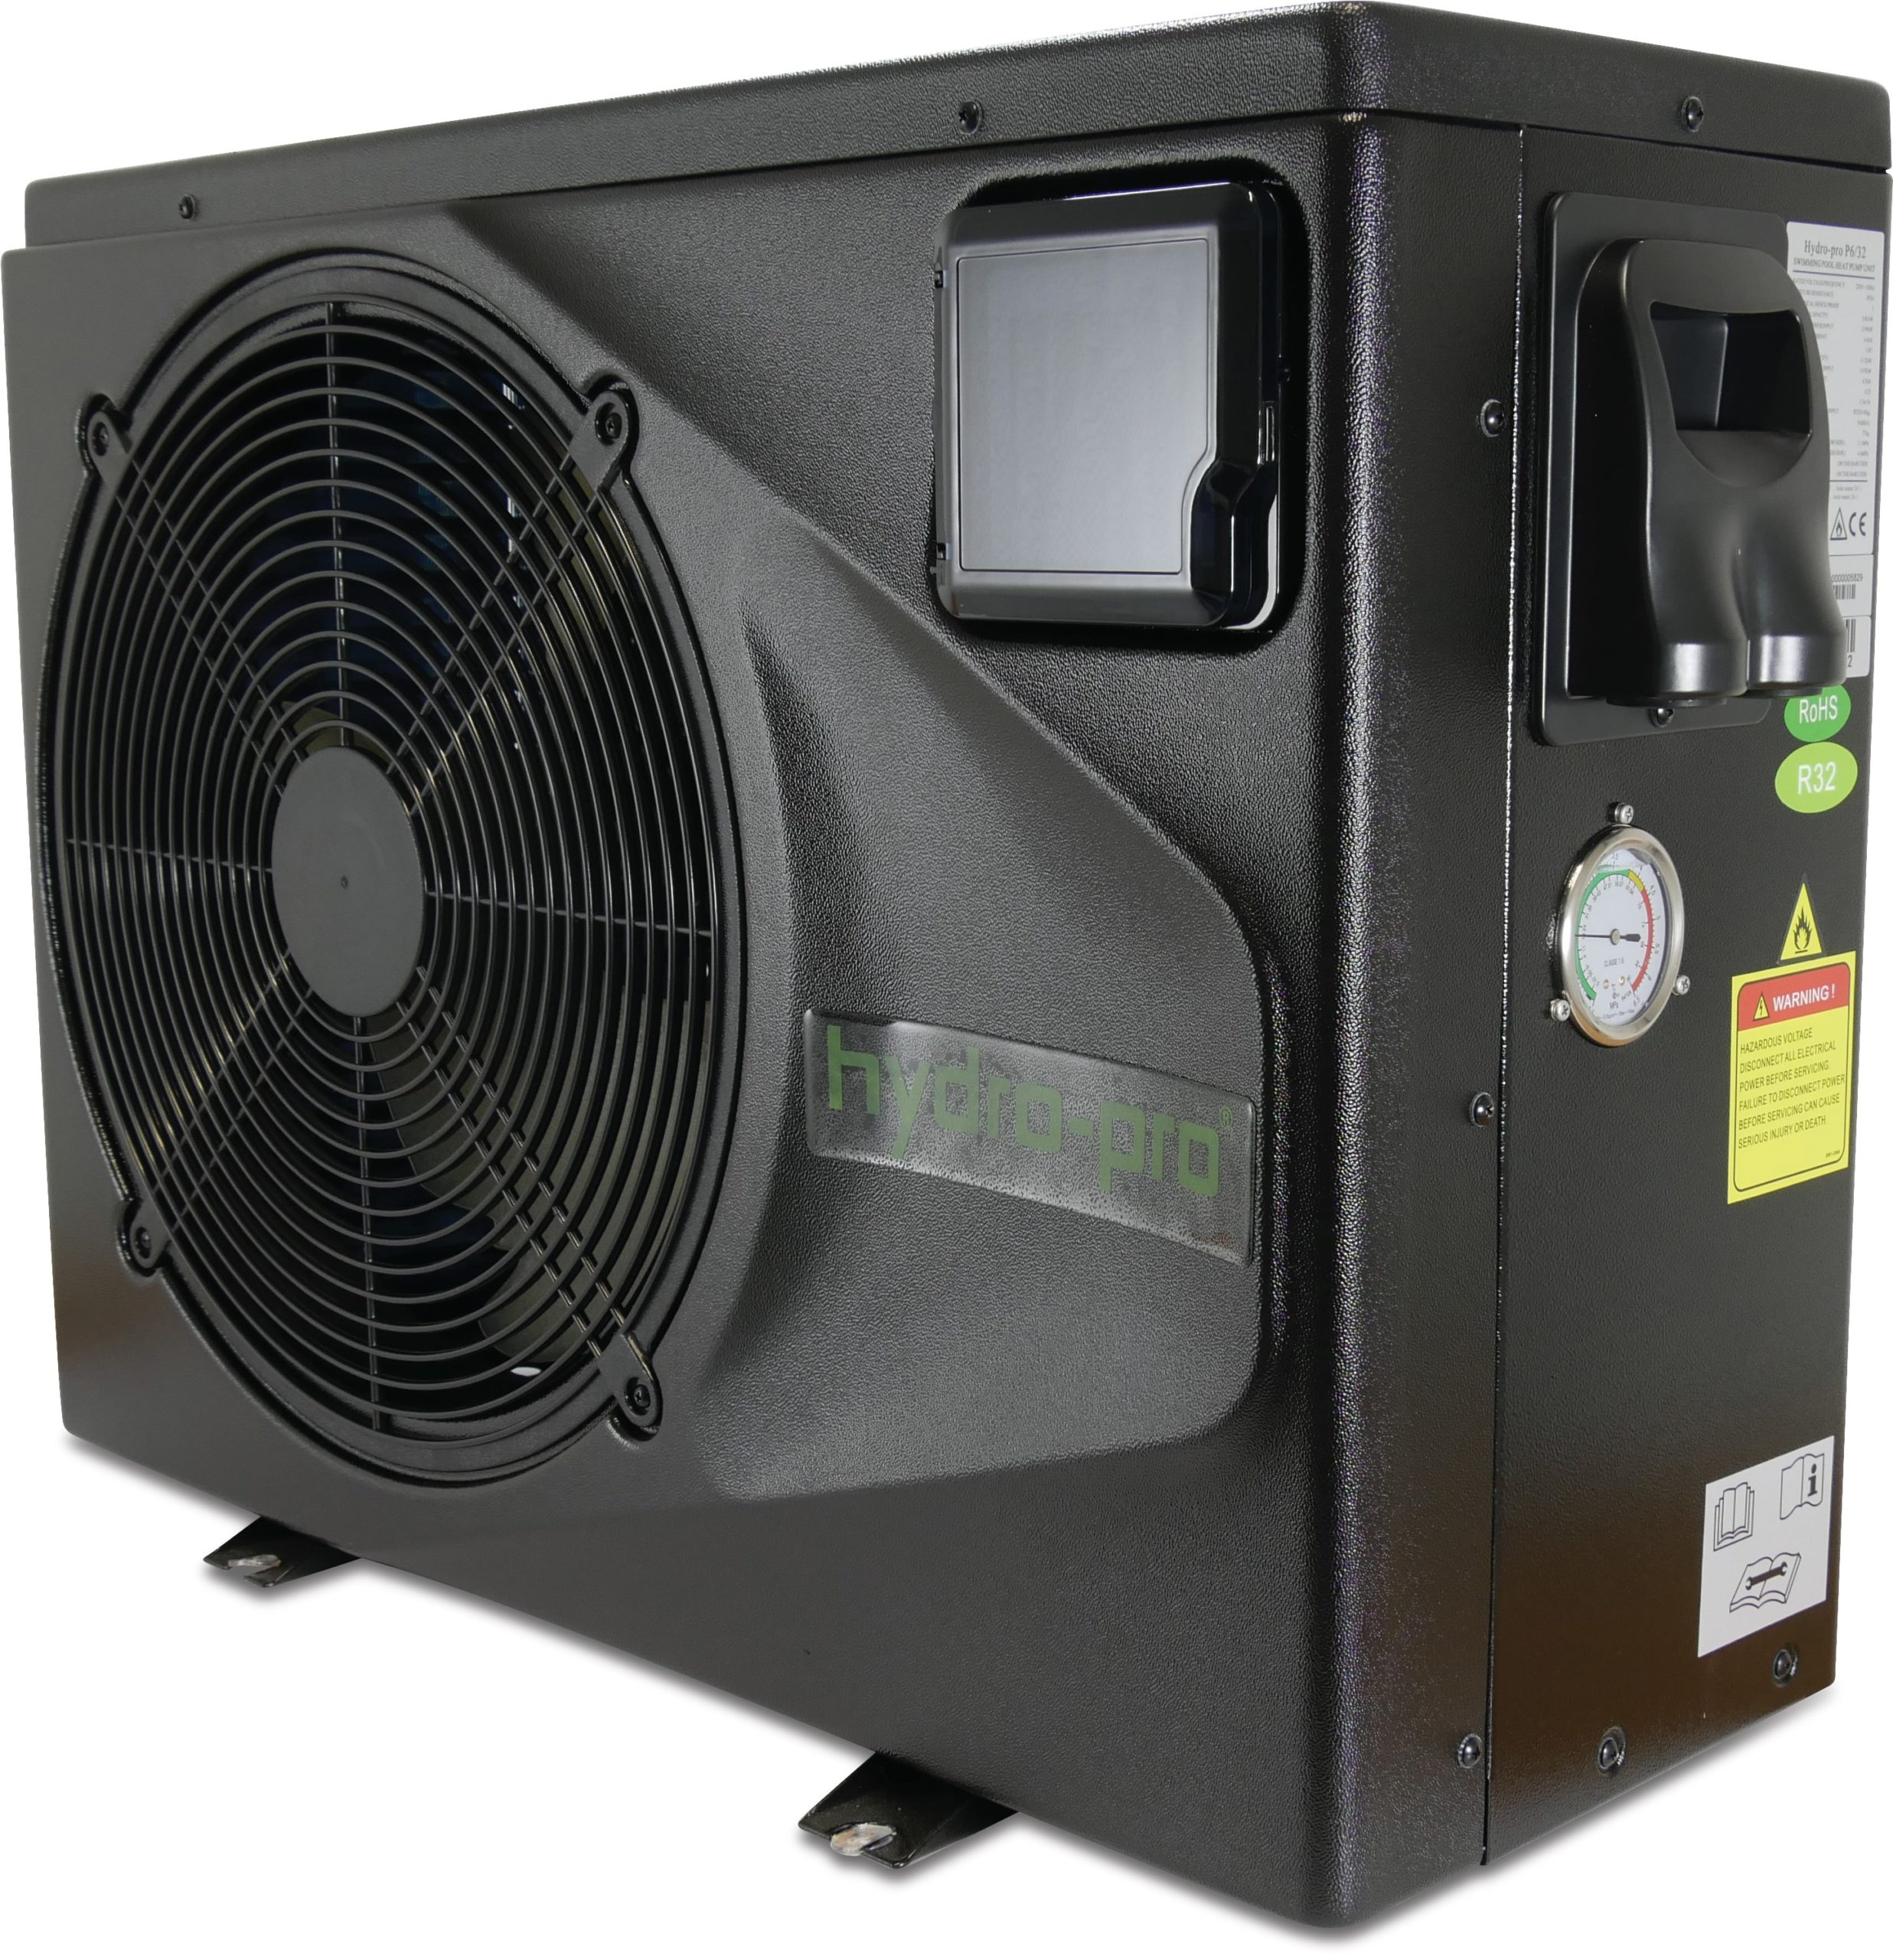 Hydro-Pro Heat Pump, Type P On/Off